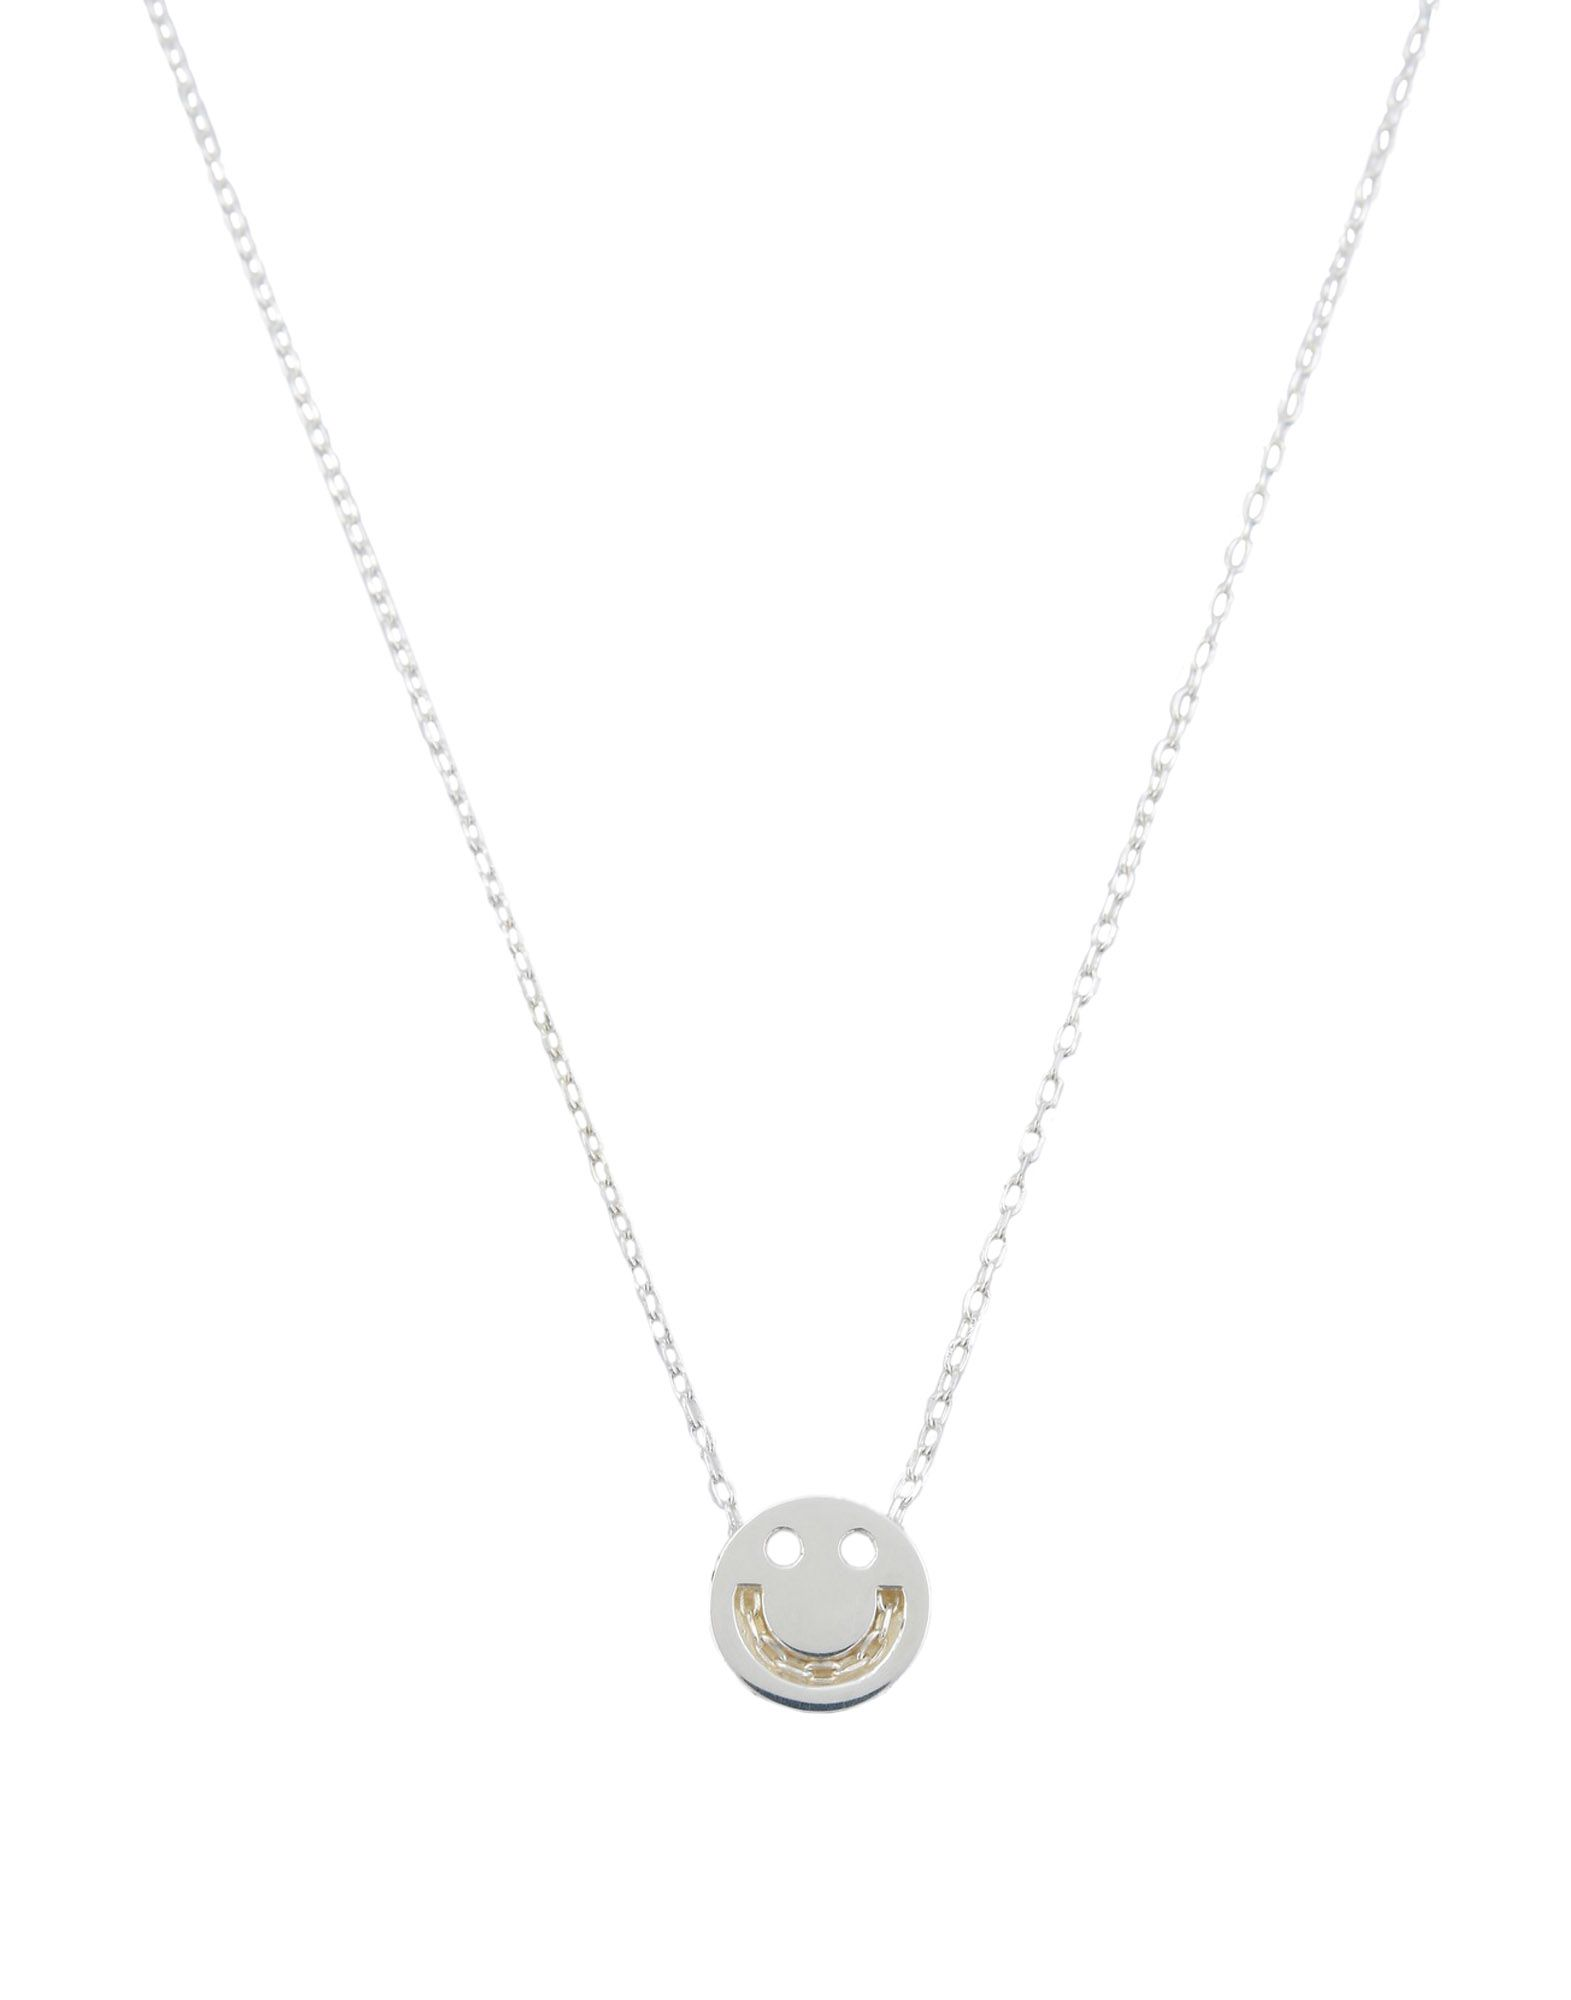 RUIFIER Necklace in Silver